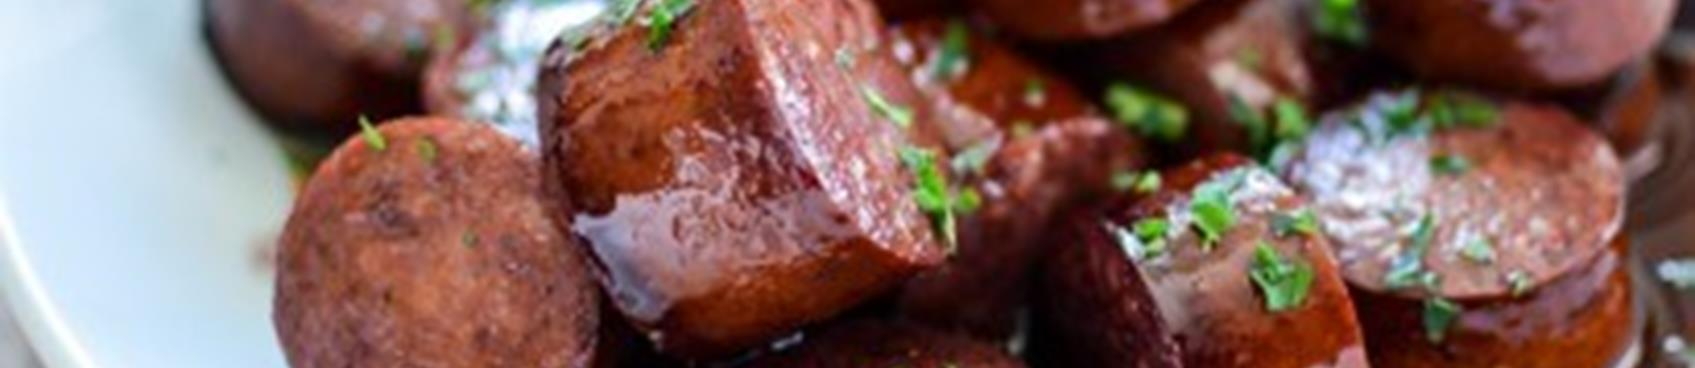 Purchase Tickets to Casing Day Sausage BBQ - Rain, Snow or Shine! at Crystal Basin Cellars on CellarPass